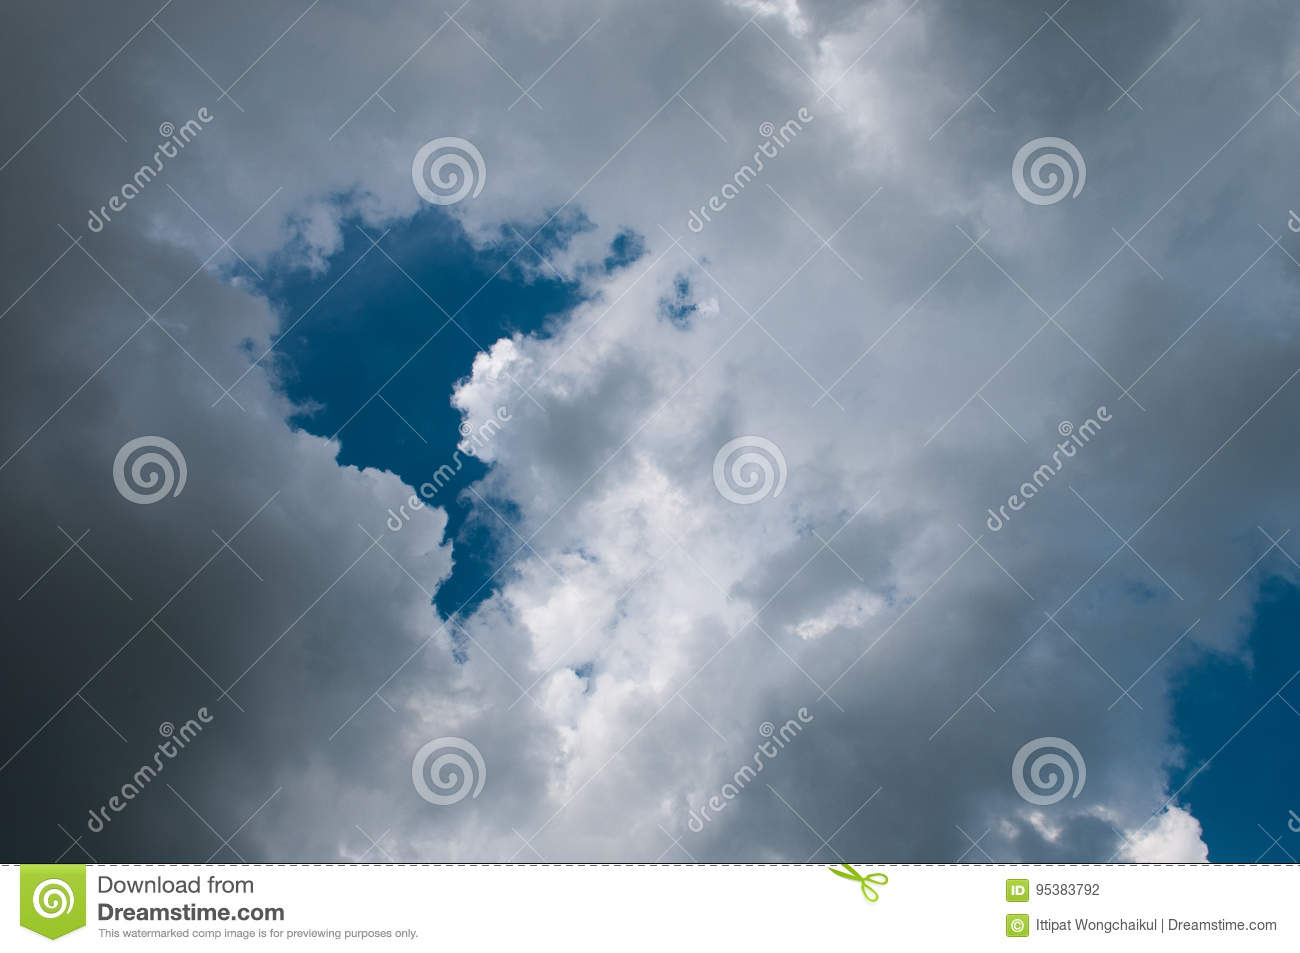 Blue sky with white clouds on sunset. Many little white clouds creating a tranquil weather pattern on the blue background